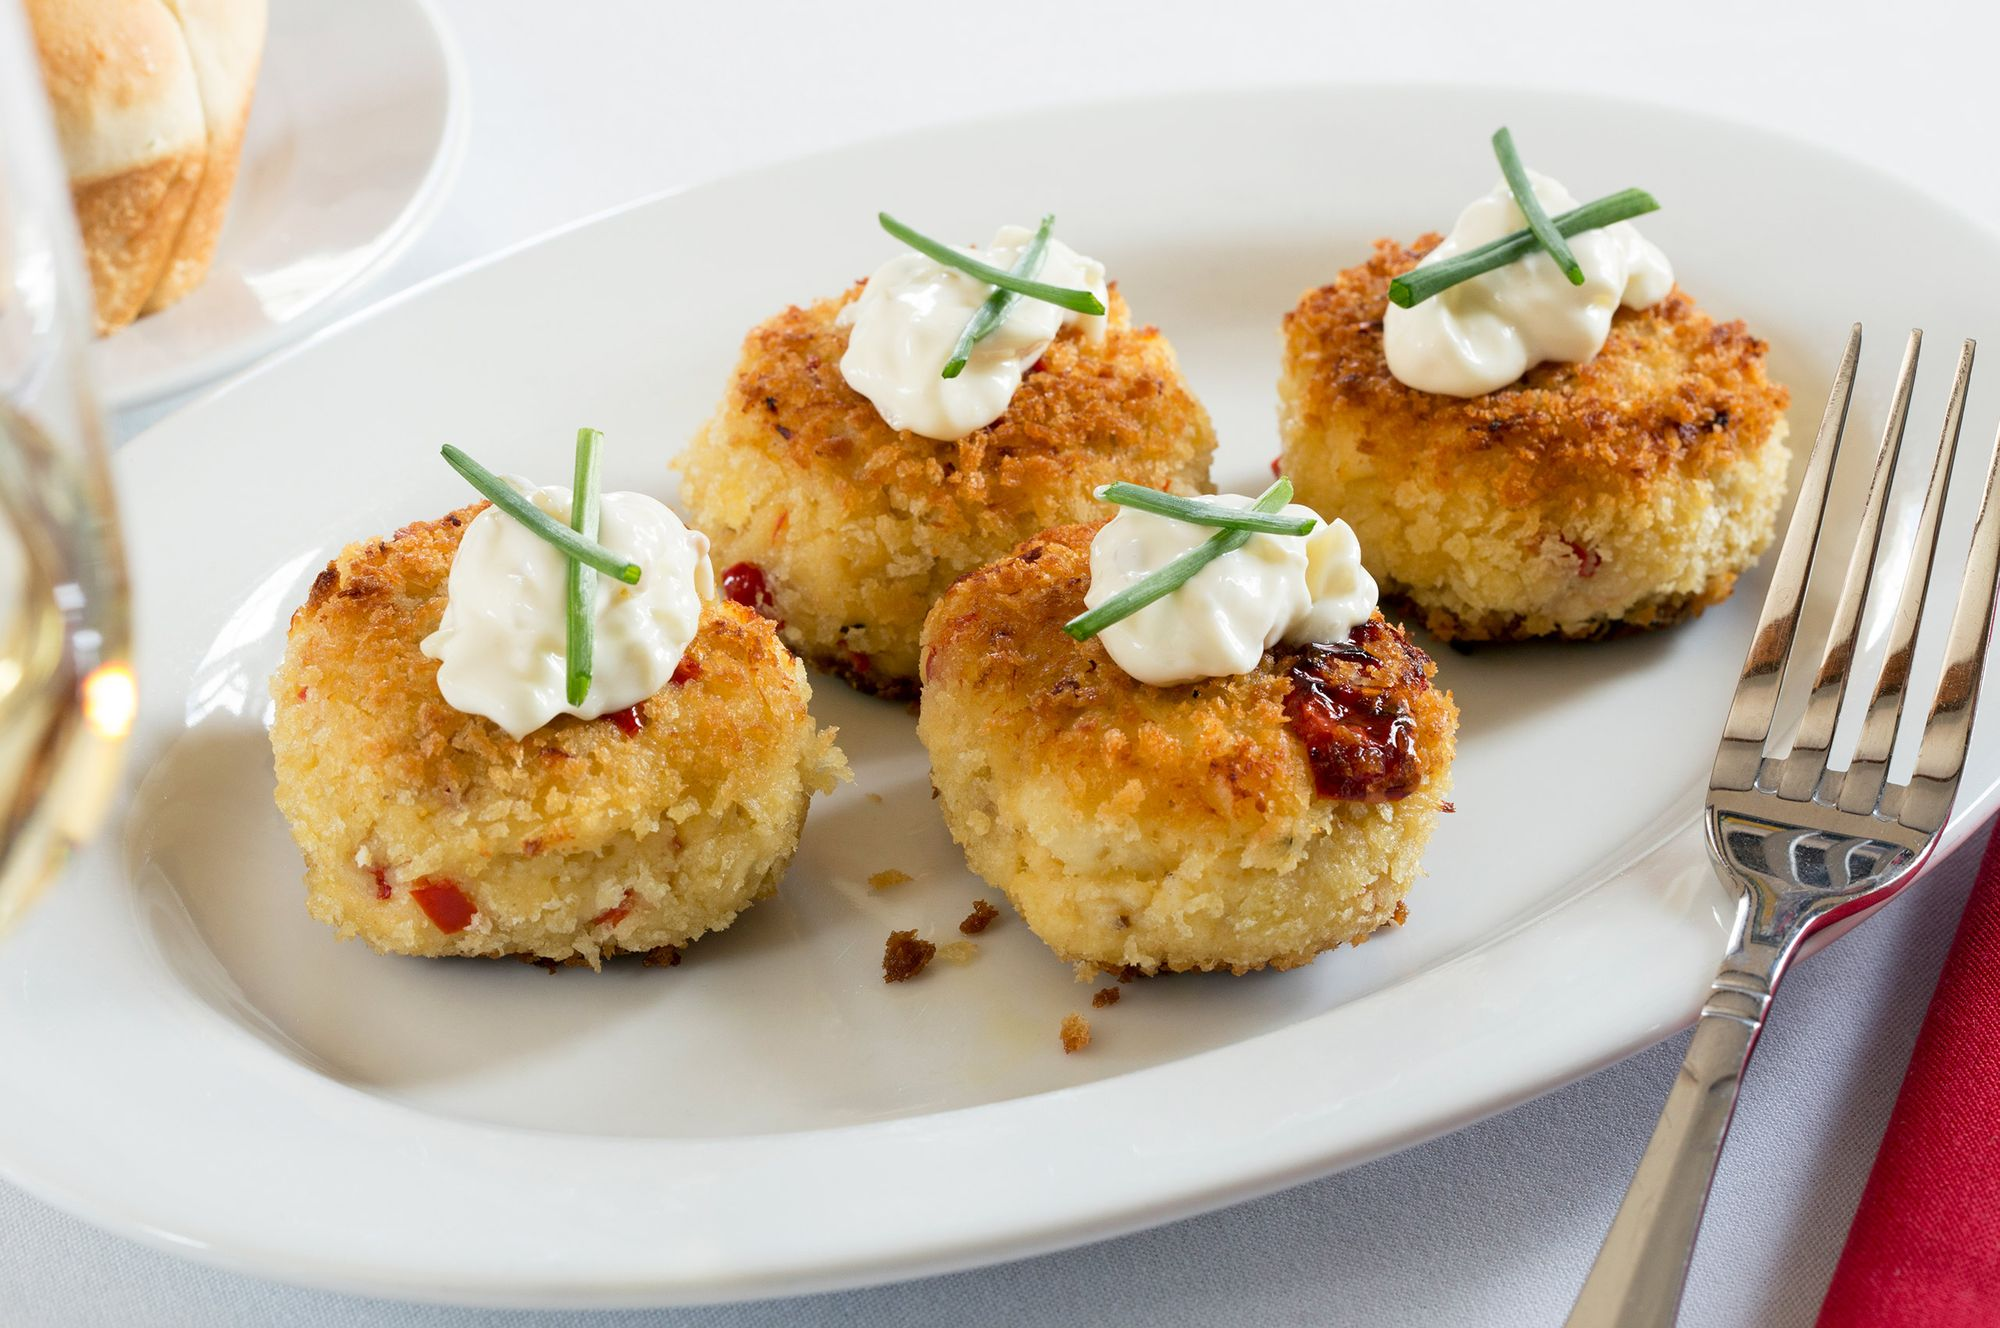 Crab cakes- appetizer - food photograph - philadelphia.jpg